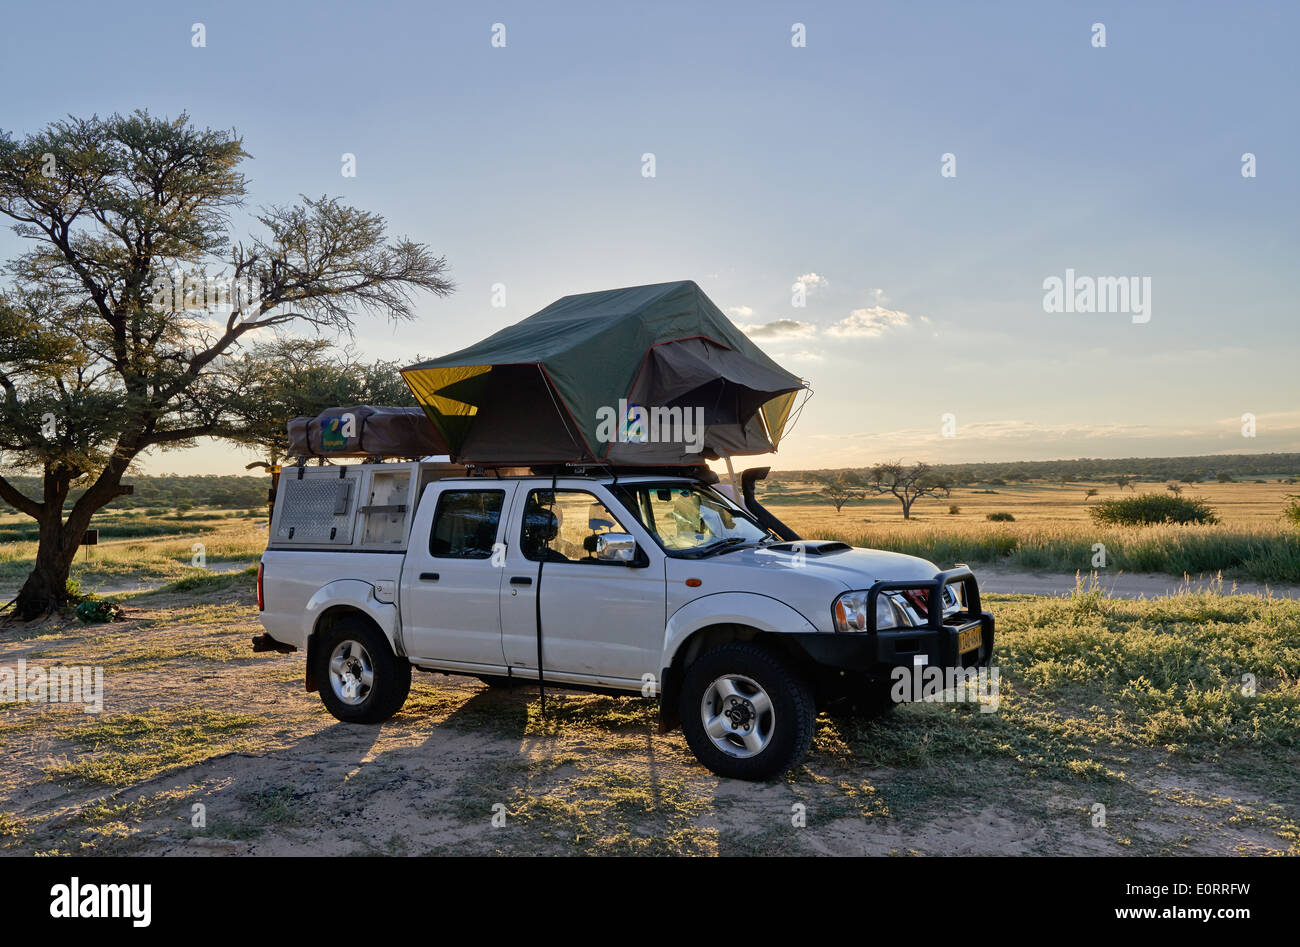 4x4 car with roof tent in landscape of Kgalagadi Transfrontier Park Mabuasehube Section Kalahari South Africa Botswana Afri & 4x4 car with roof tent in landscape of Kgalagadi Transfrontier ...